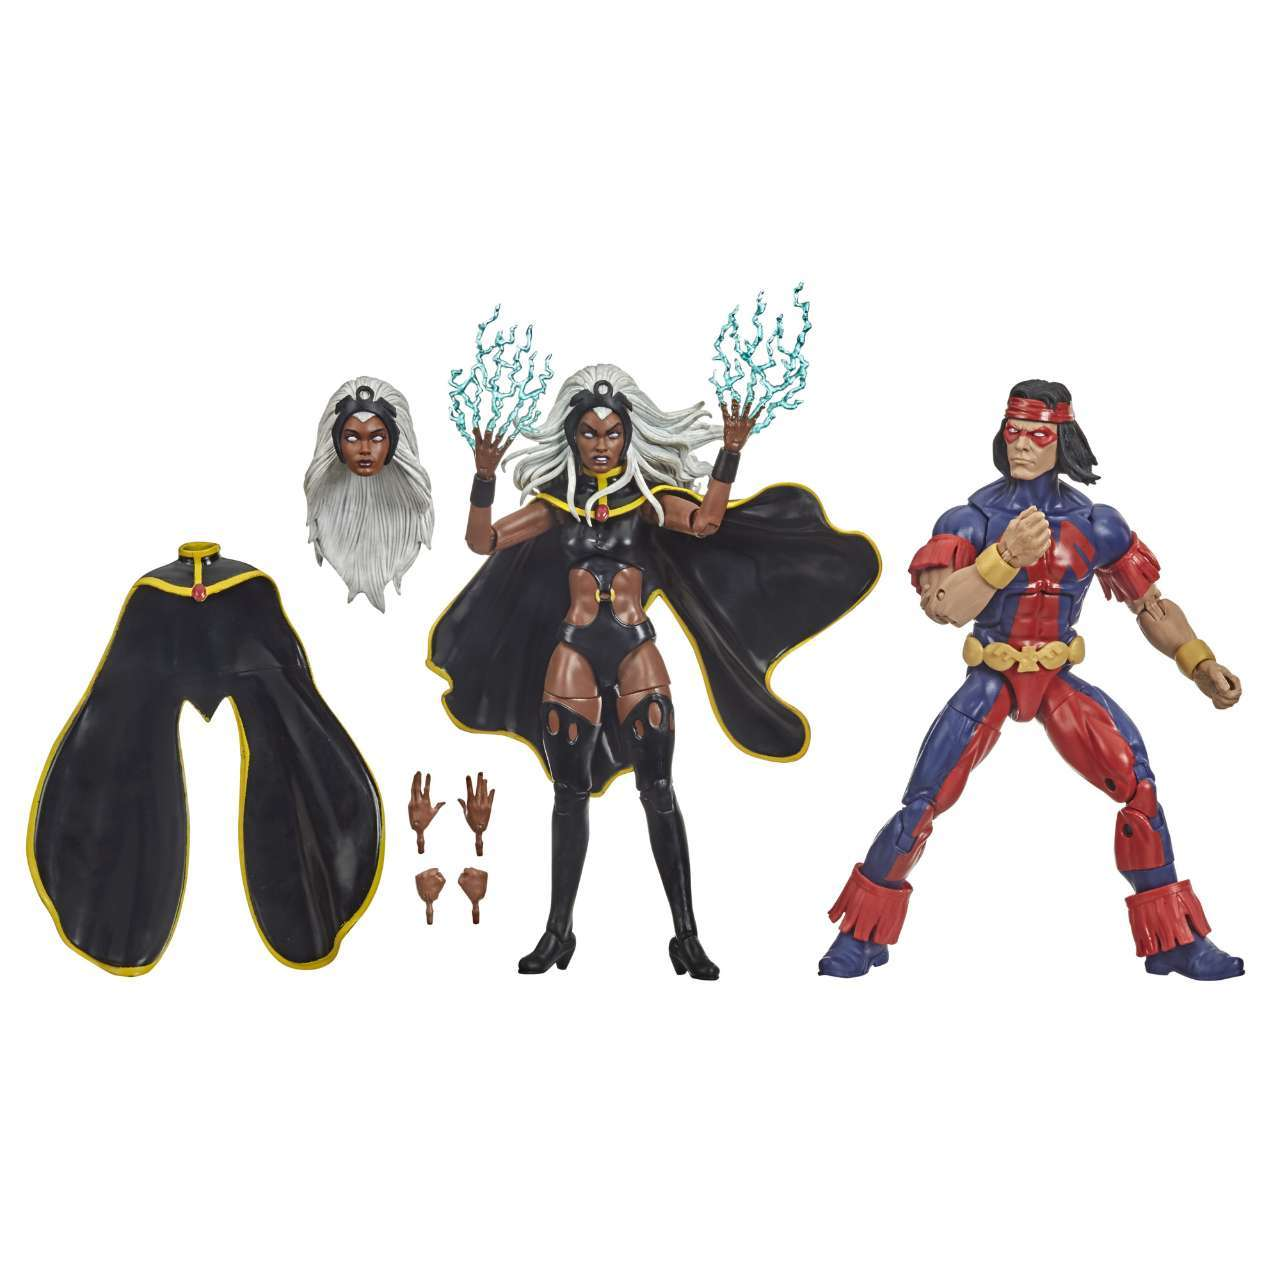 MARVEL LEGENDS SERIES X-MEN 6-INCH STORM AND MARVEL S THUNDERBIRD Figure 2-Pack - oop (9)